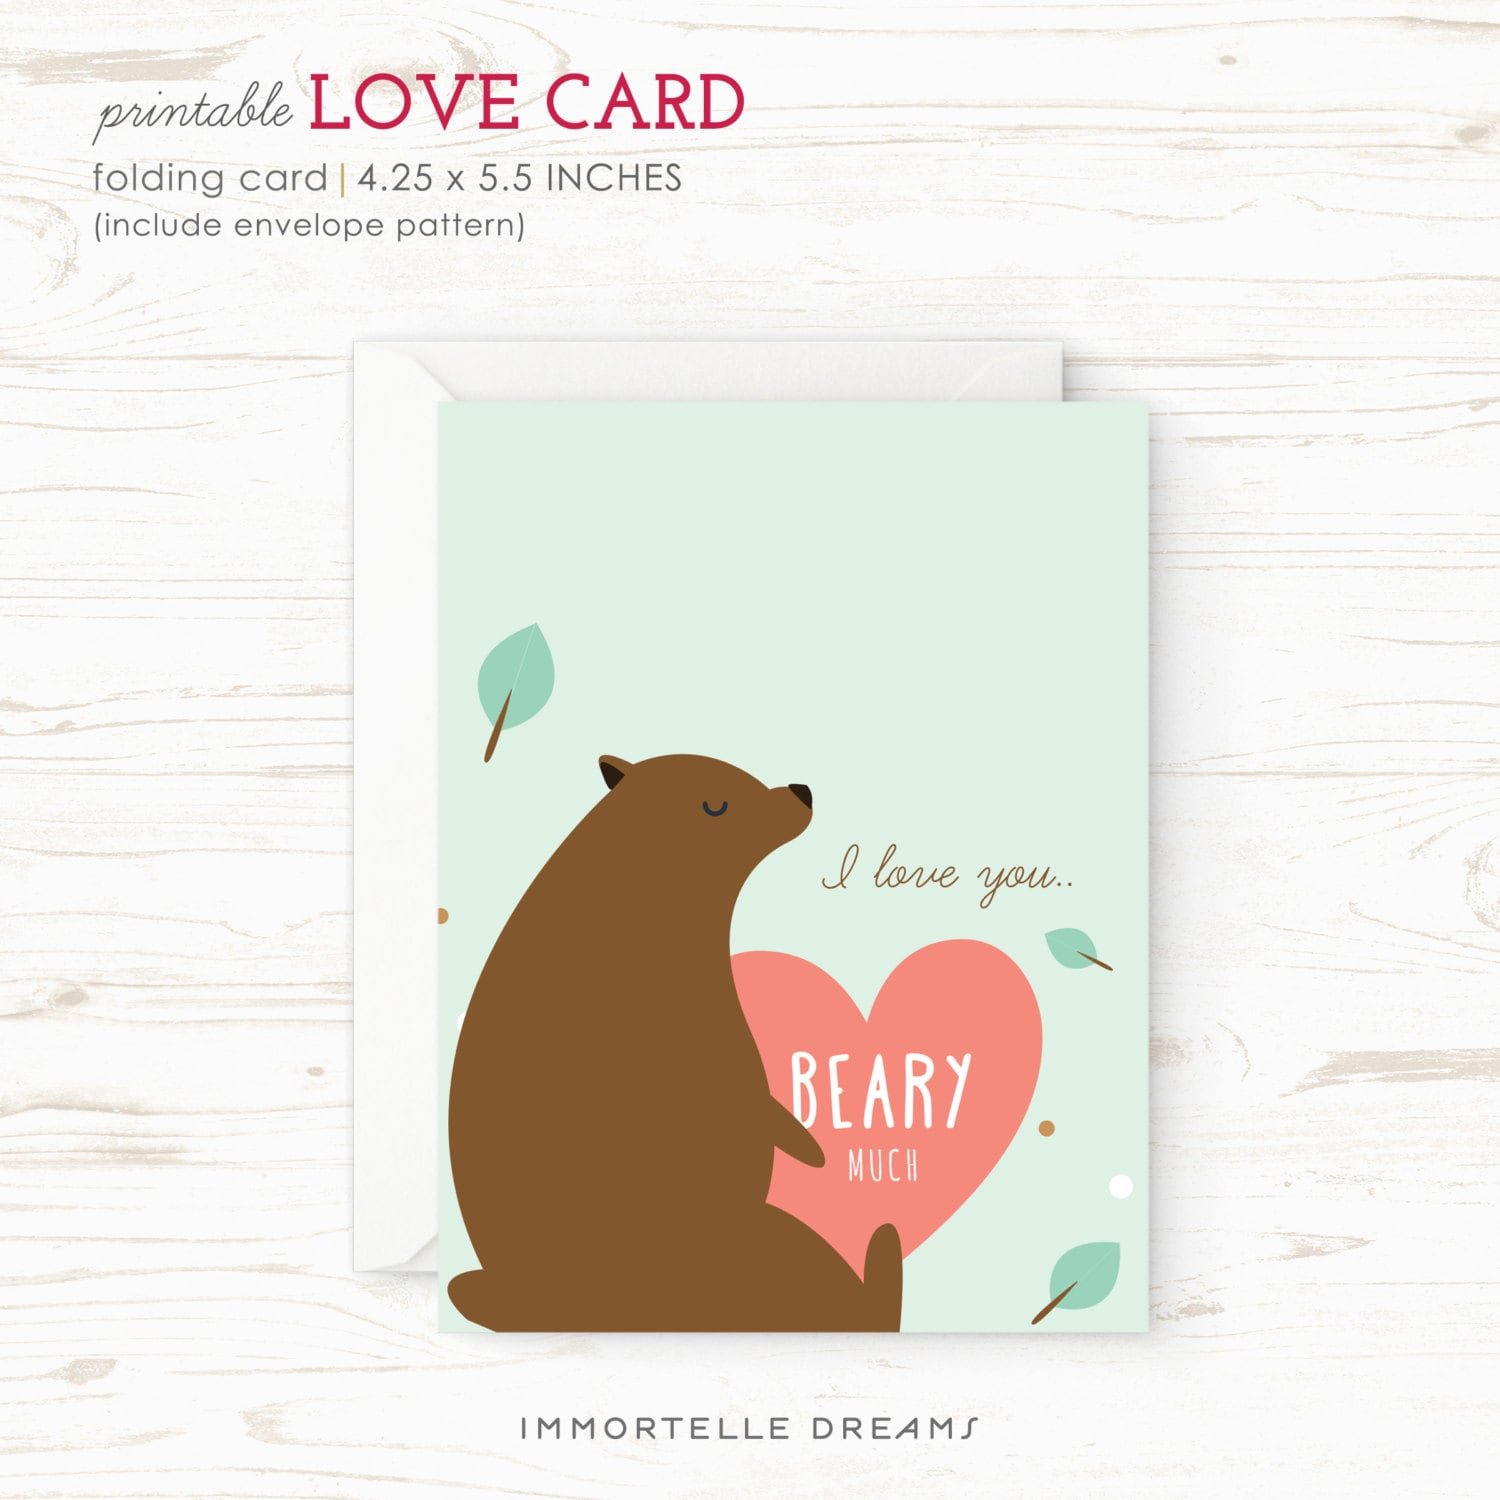 I Love You Beary Much Printable Valentine Card Love Card